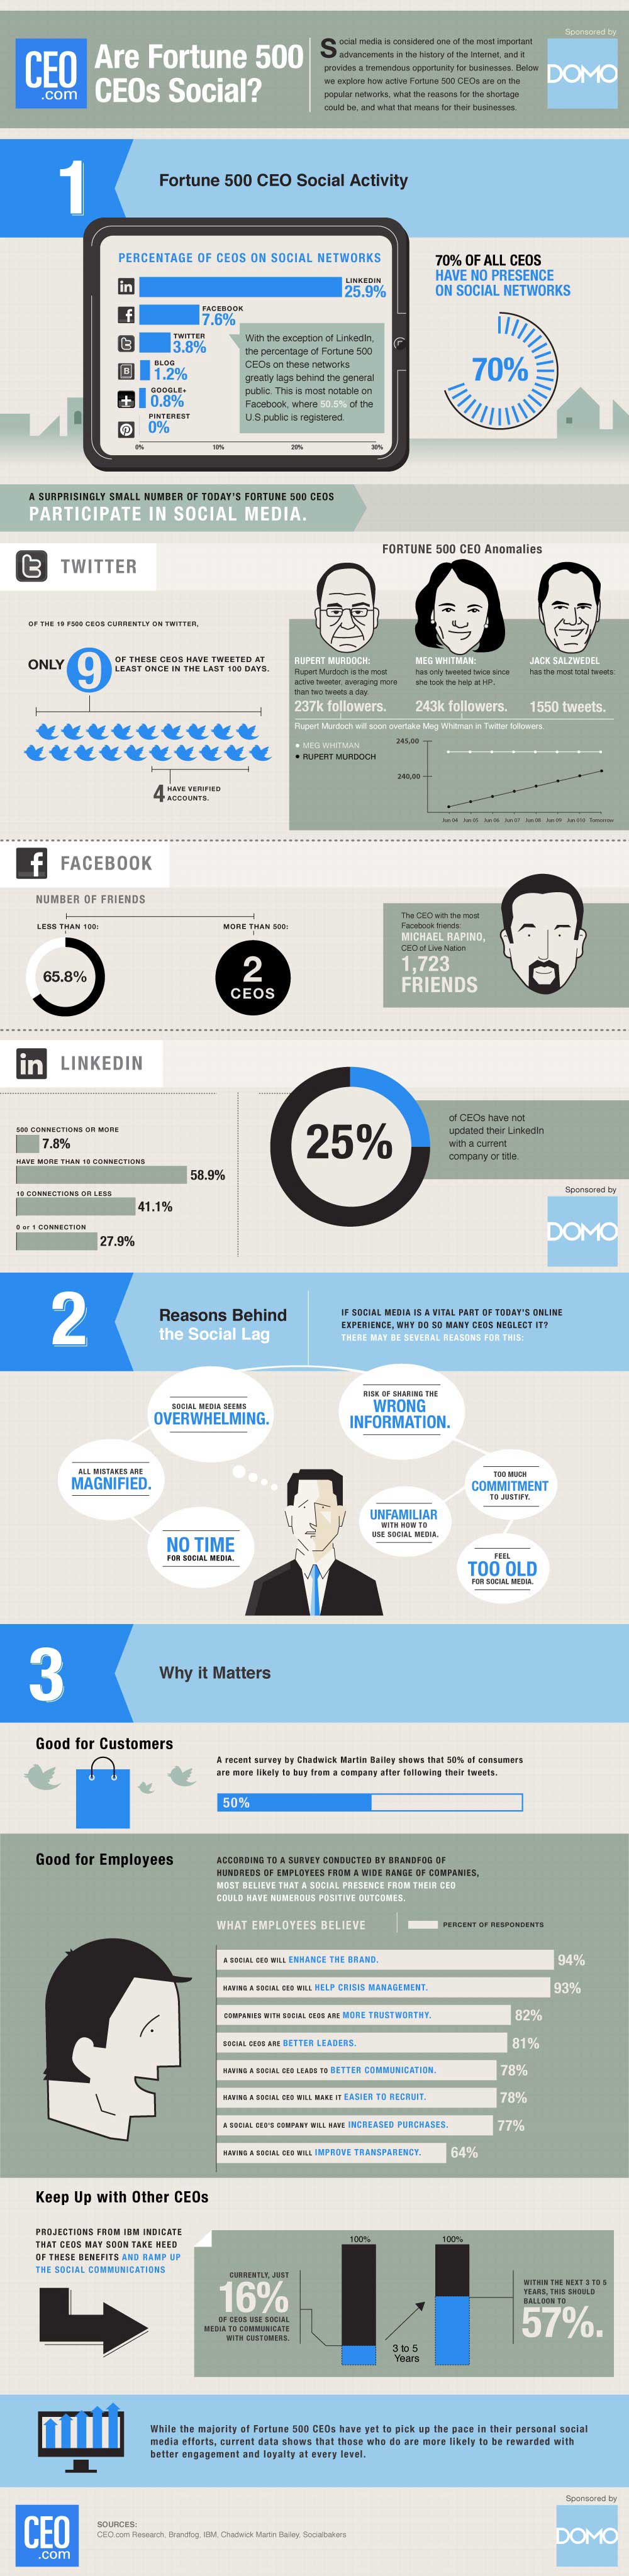 Social CEO Index infographic